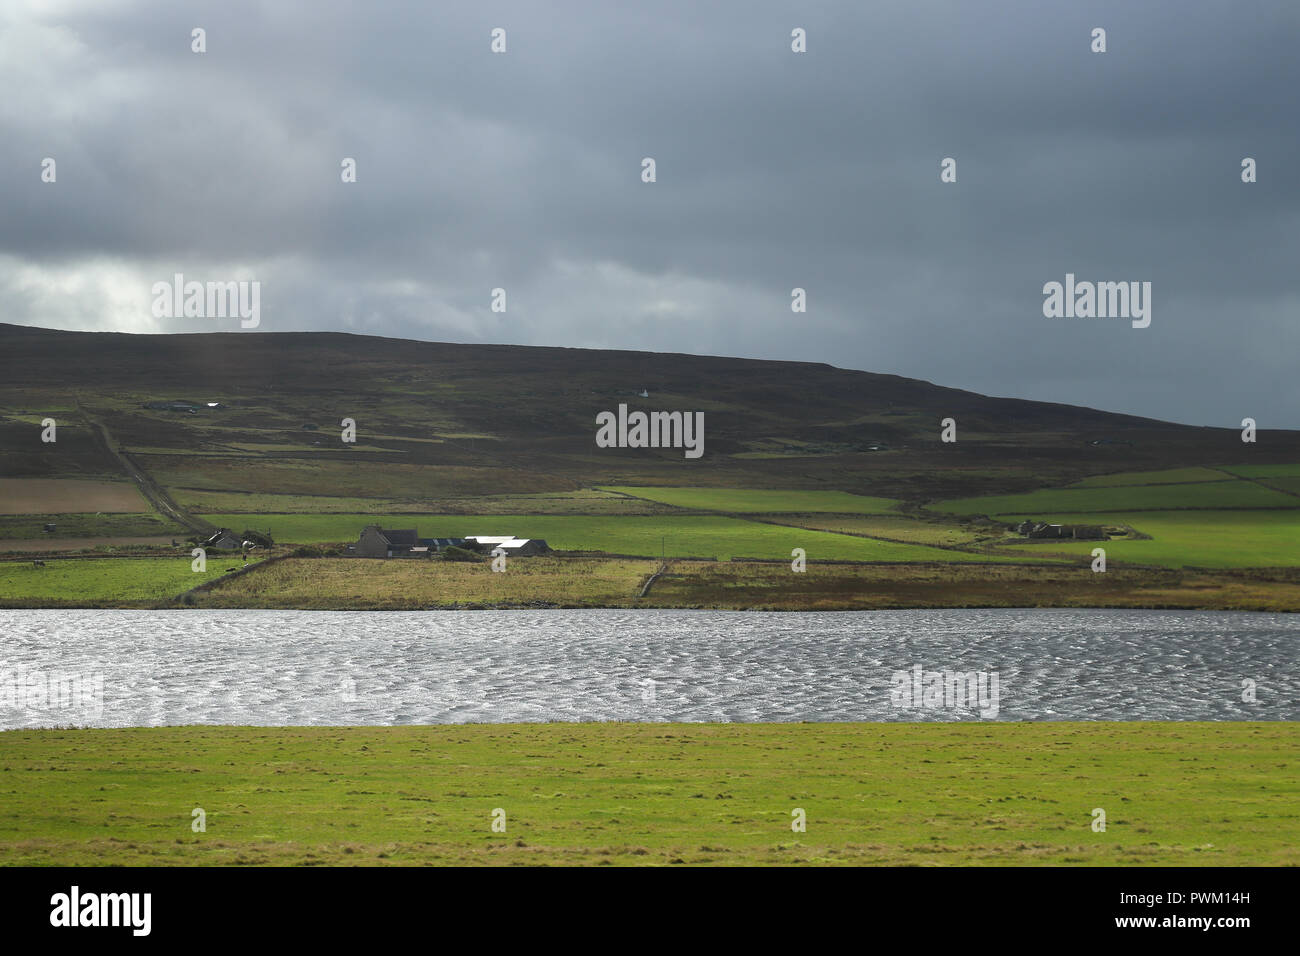 Strong wind blowing down the Loch of Wasbister creates wave pattern on the water. Bright green fields surround it.Distant hill in cloud shadow. Rousay - Stock Image